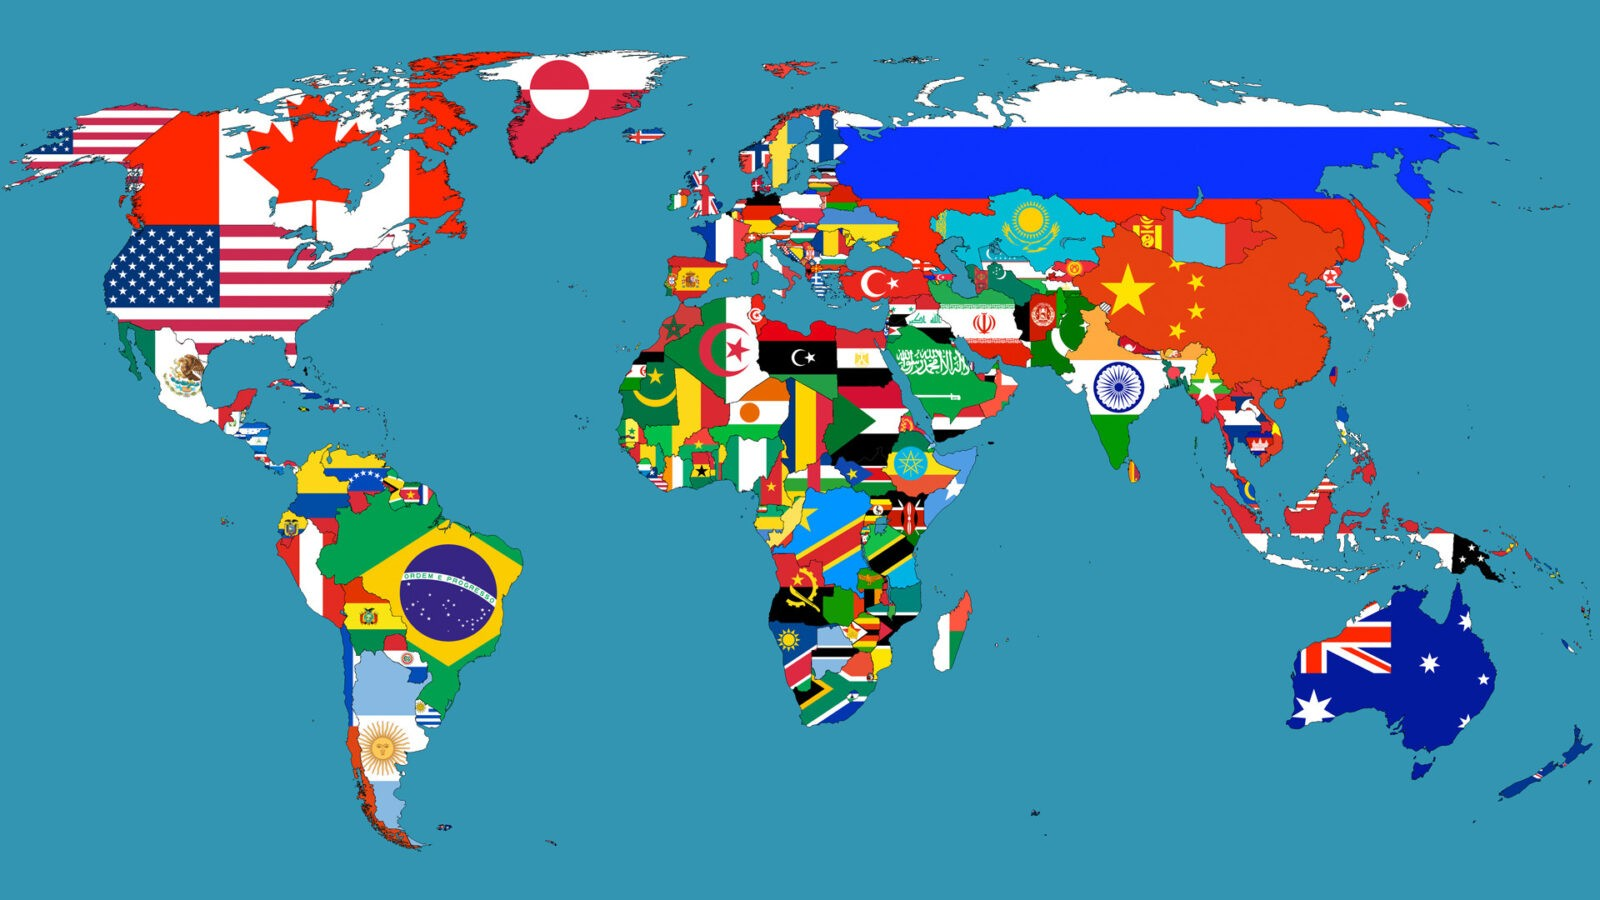 Last chance saloon countries for filing national phase patent applications